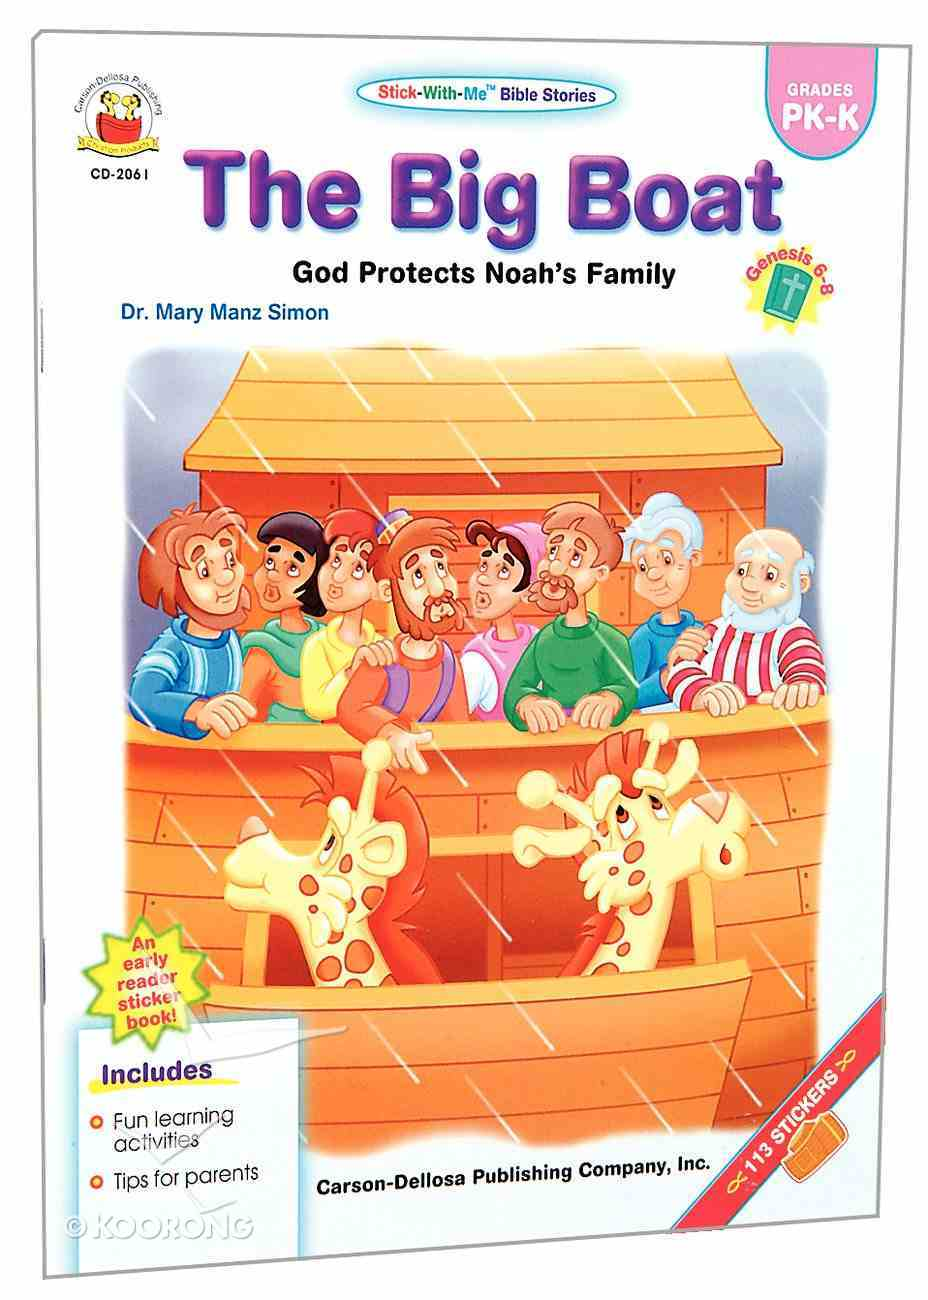 Stick-With-Me: The Big Boat (Stick-with-me Bible Stories Series) Paperback